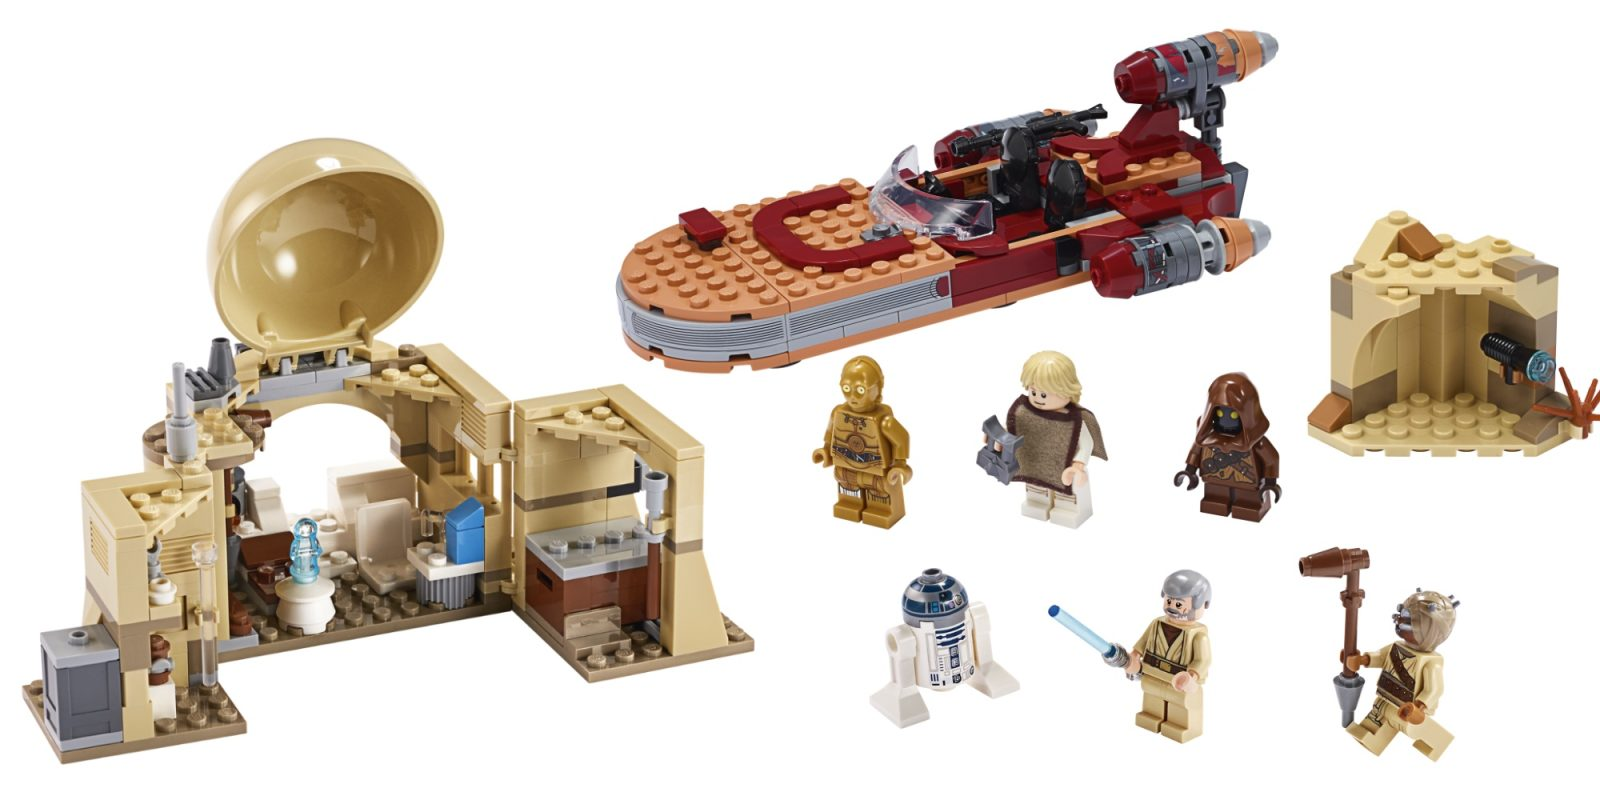 LEGO travels to Tatooine with the debut of two new Star Wars Comic-Con sets